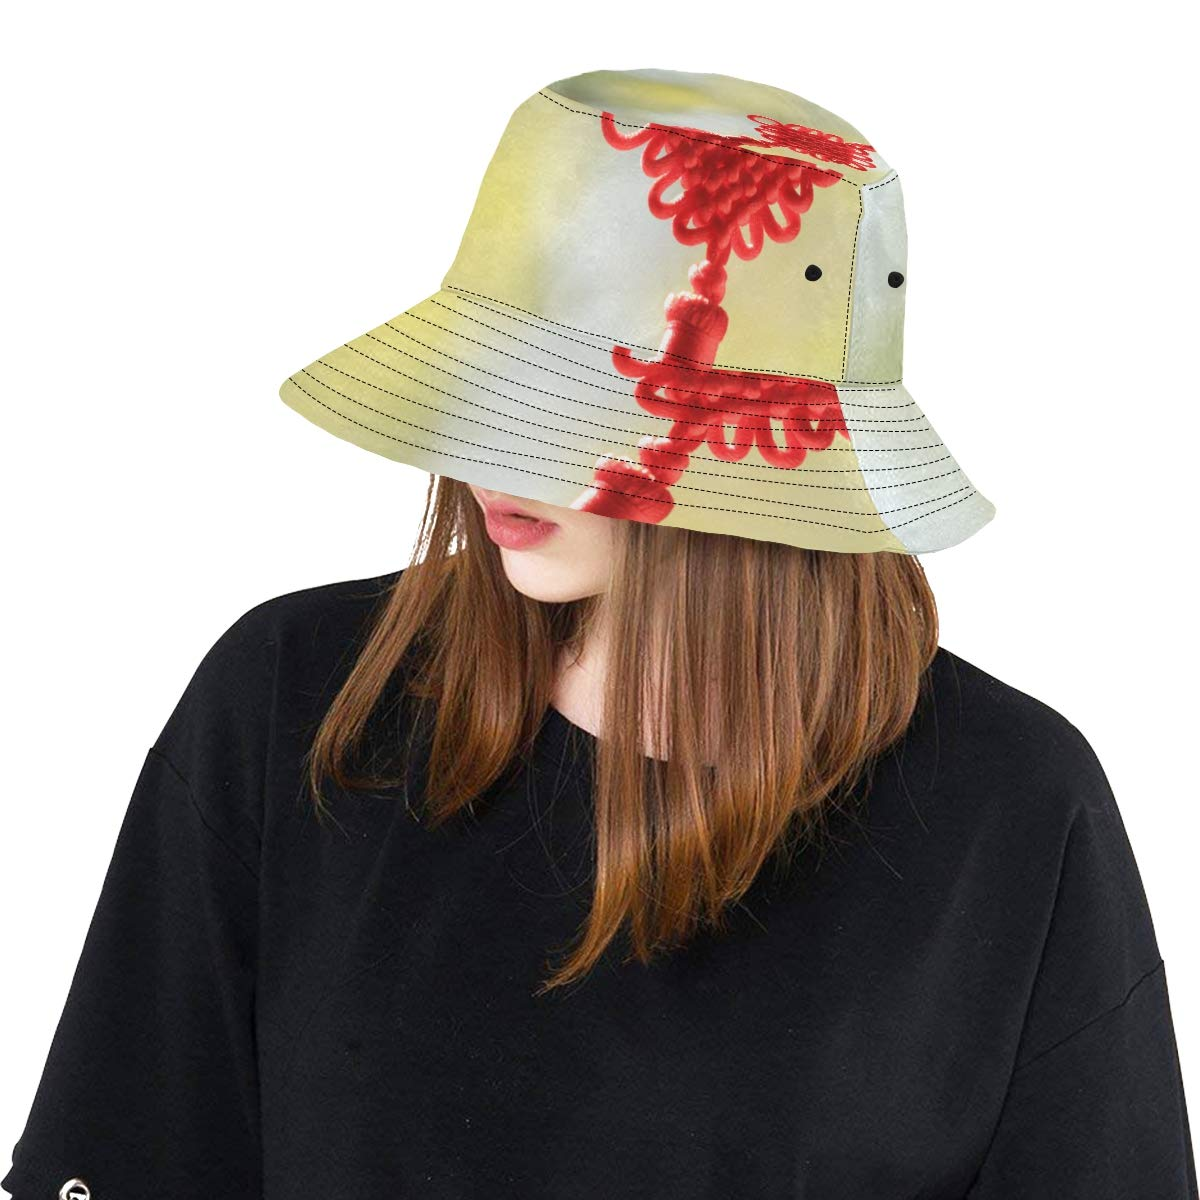 Chinese Knot Good Lucky New Summer Unisex Cotton Fashion Fishing Sun Bucket Hats for Kid Teens Women and Men with Customize Top Packable Fisherman Cap for Outdoor Travel